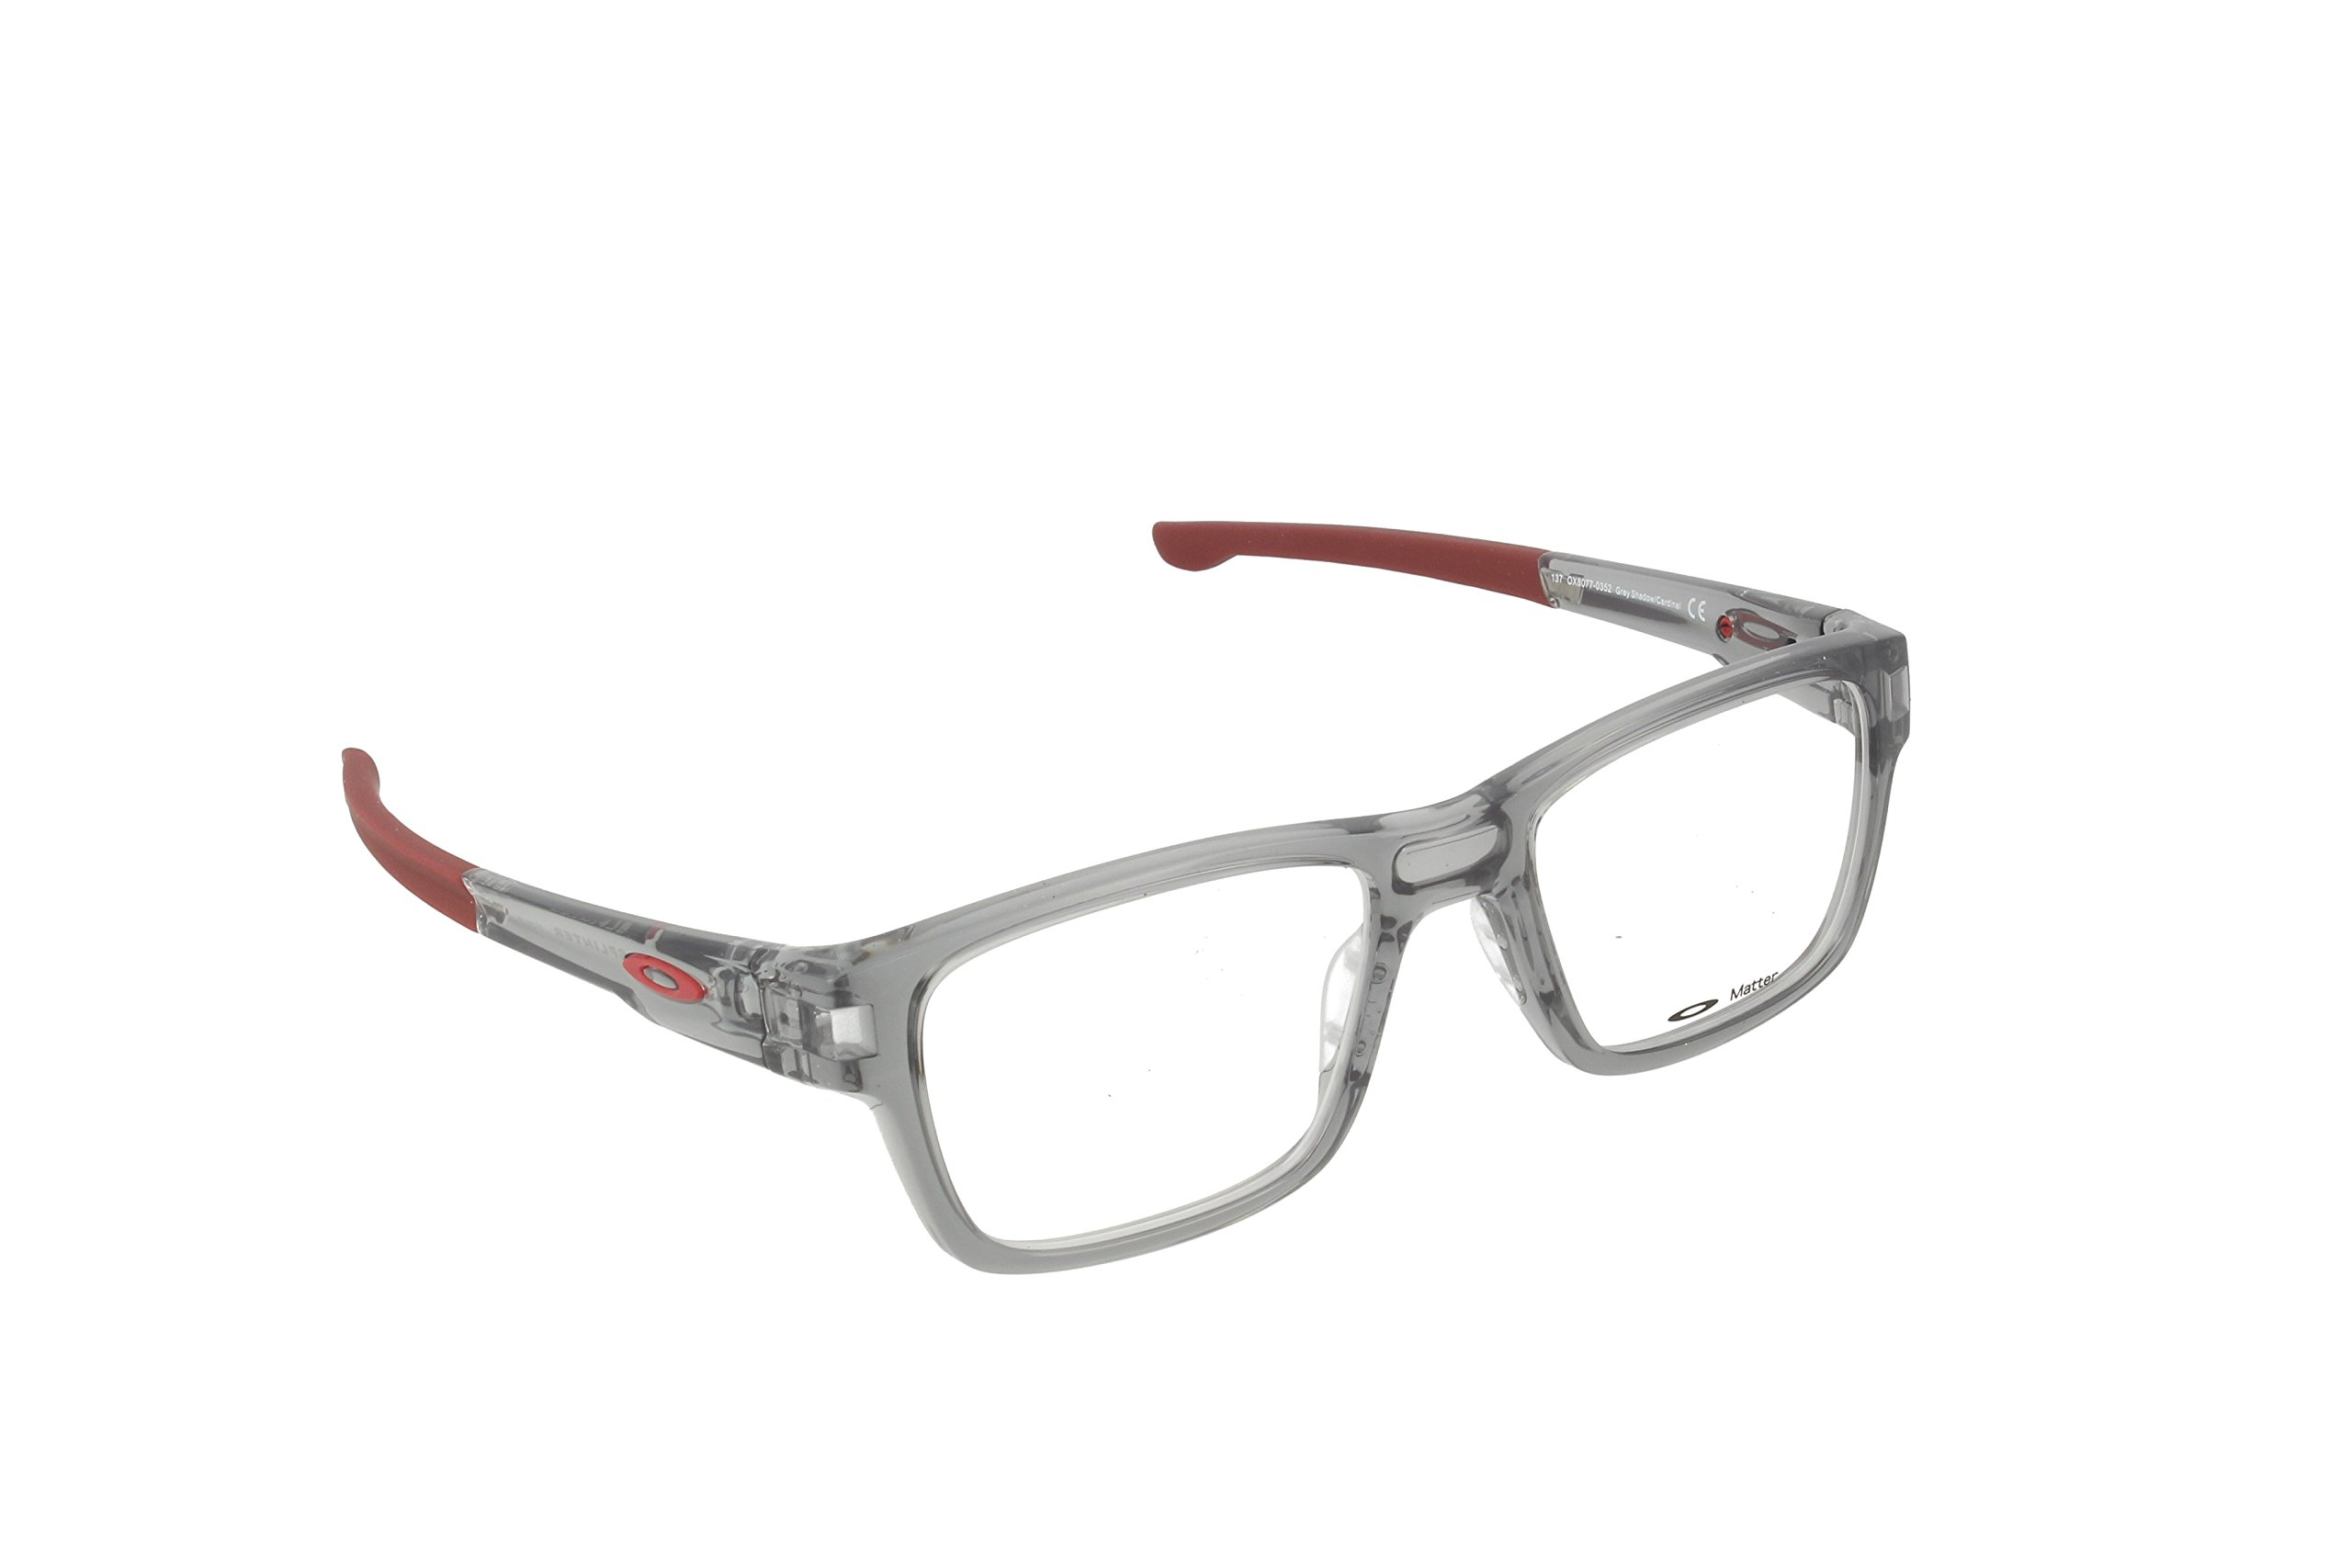 OAKLEY Splinter OX 8077-03 Eyeglasses Grey Shadow 52mm by Oakley